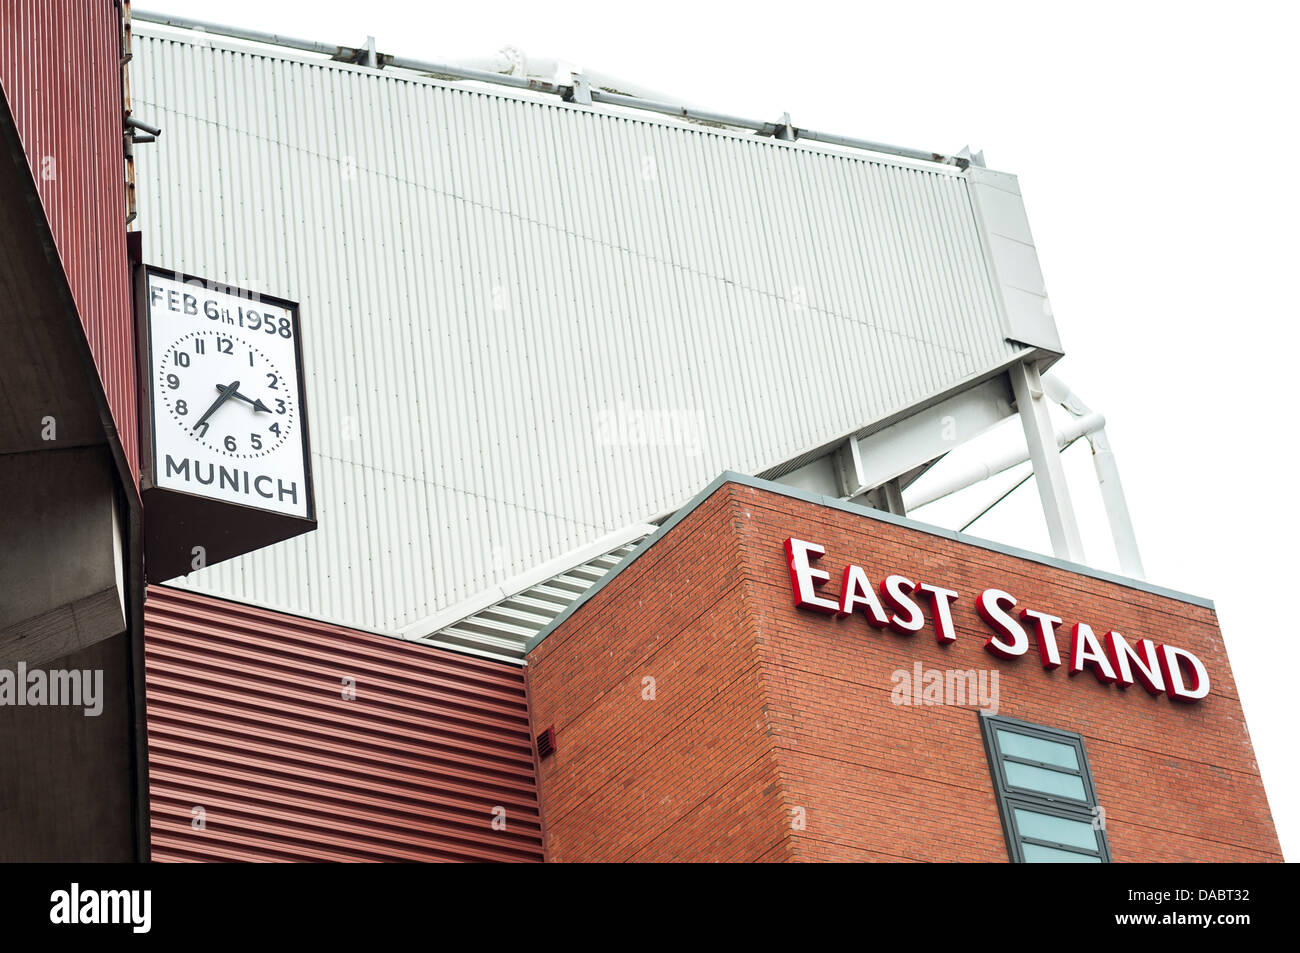 Munich clock and East Stand, Old Trafford, Manchester - Stock Image